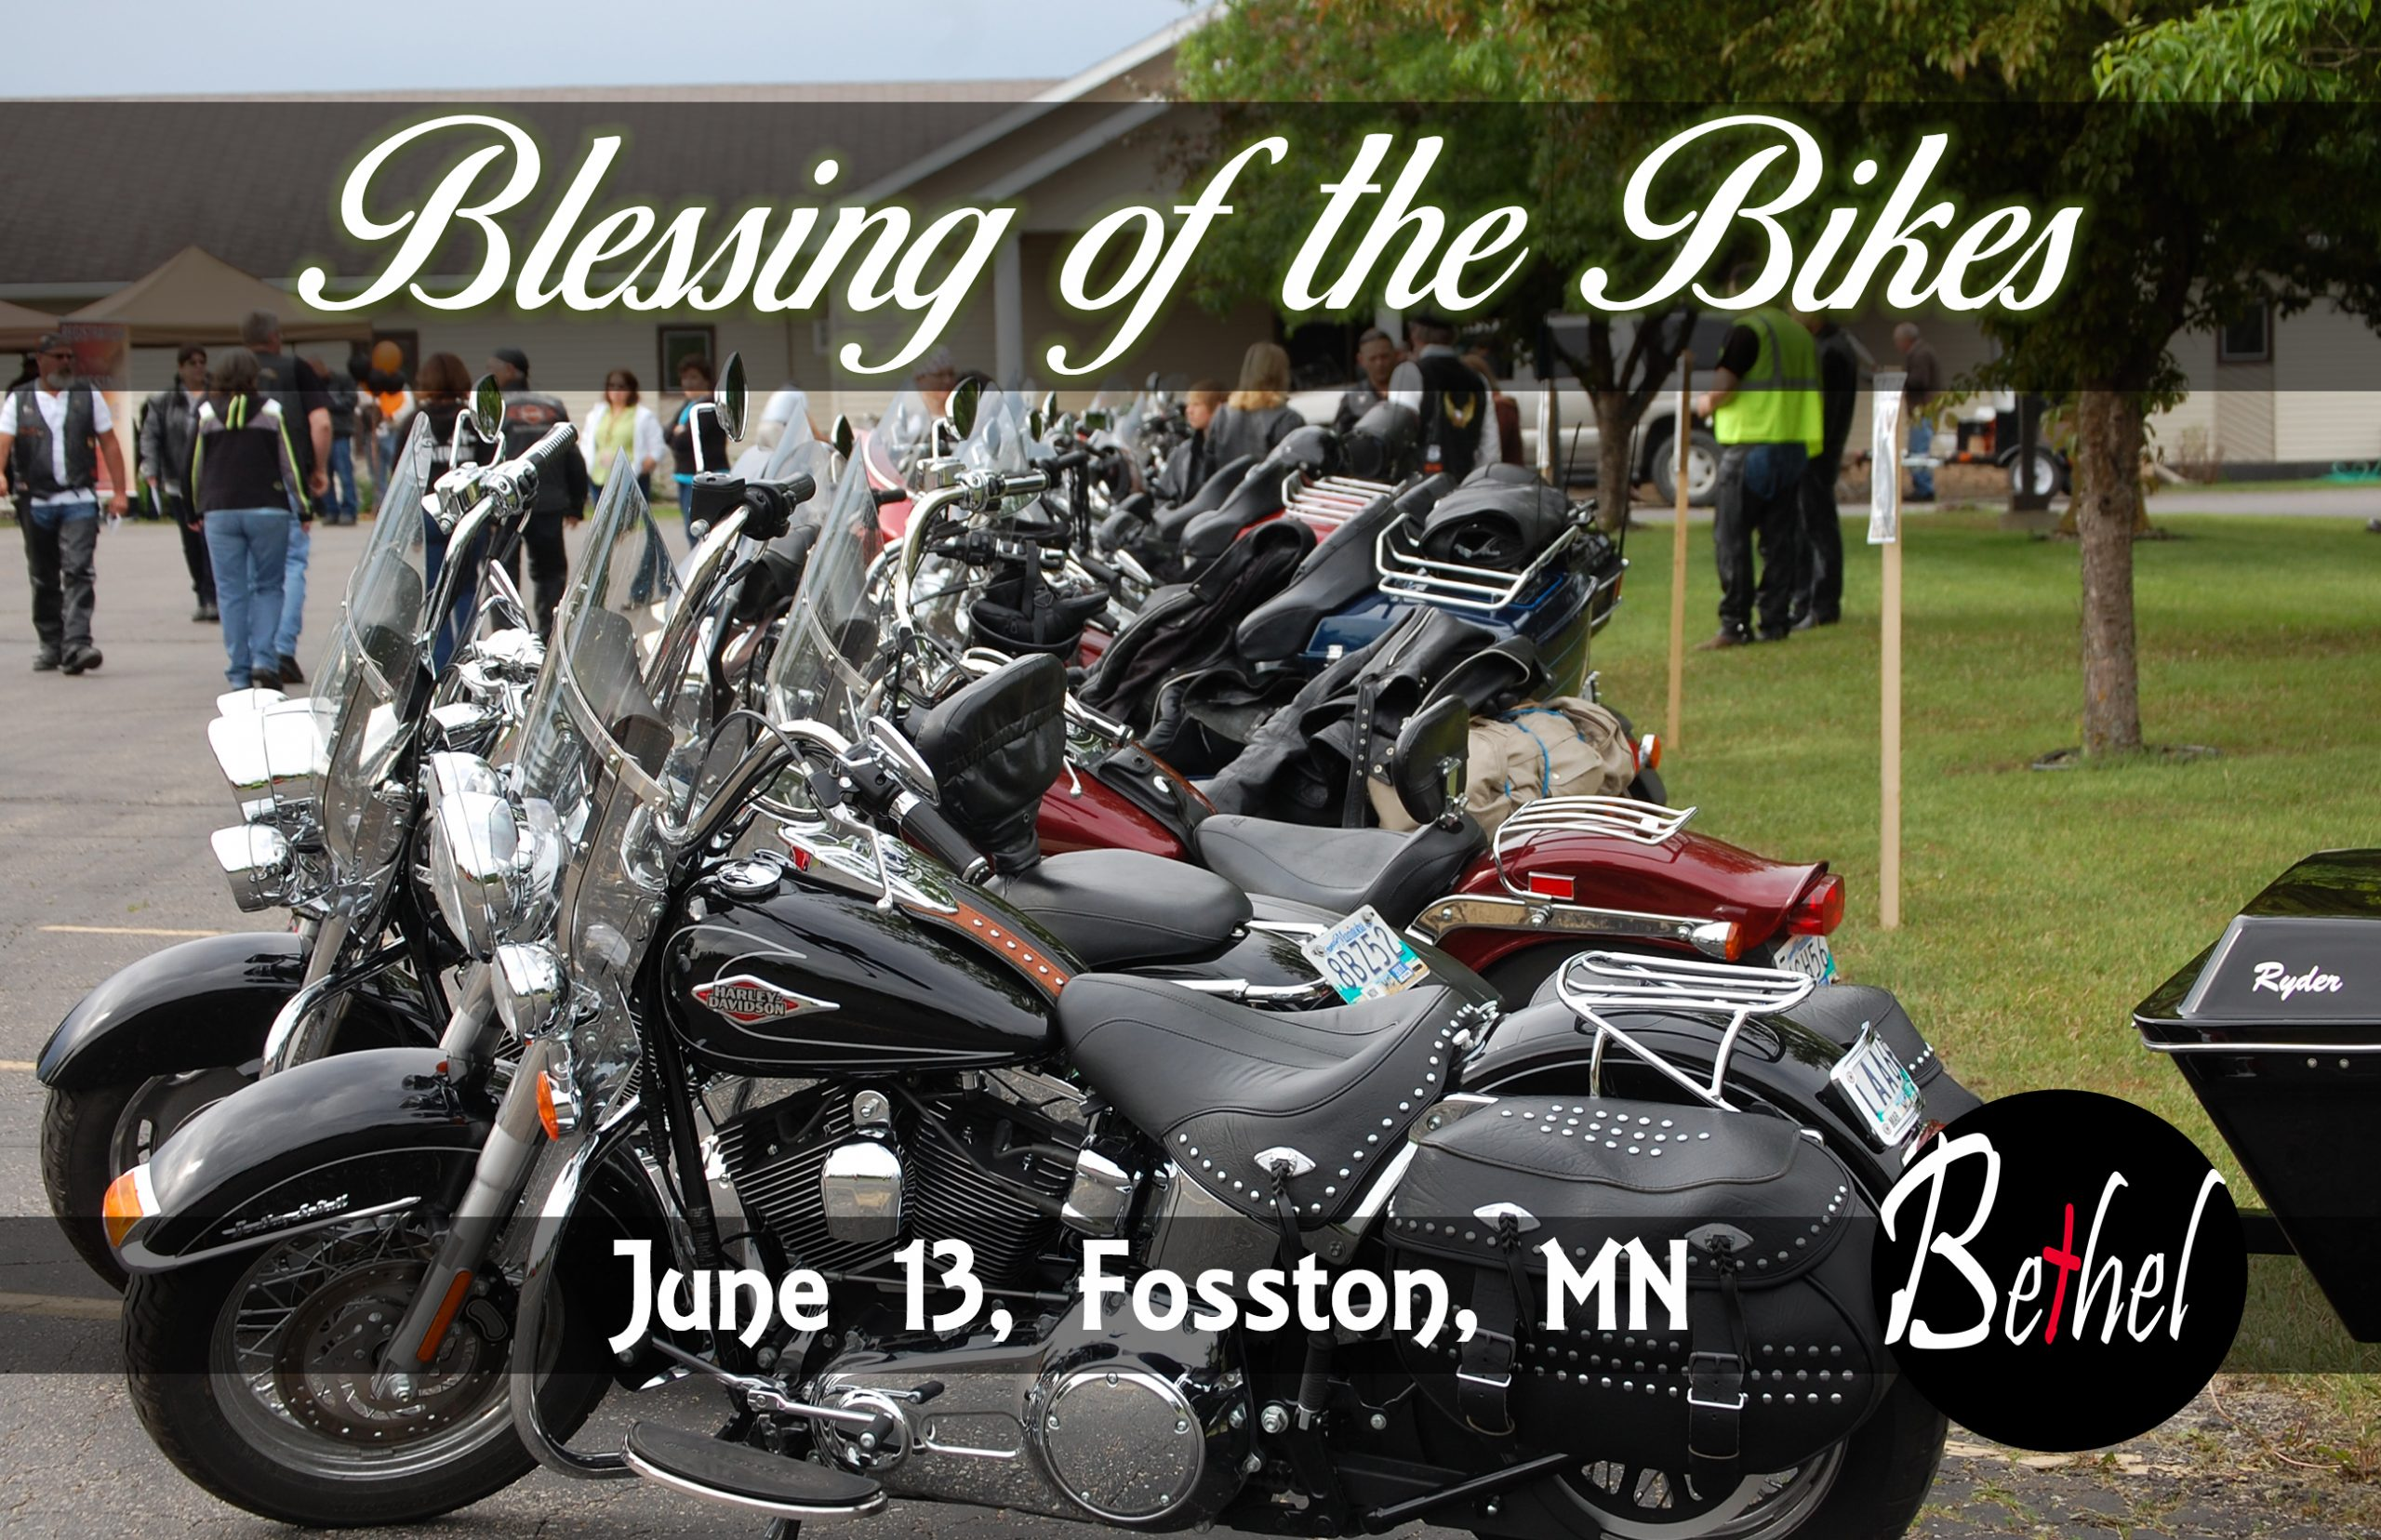 Blessing of the Bikes at Bethel Assembly in Fosston